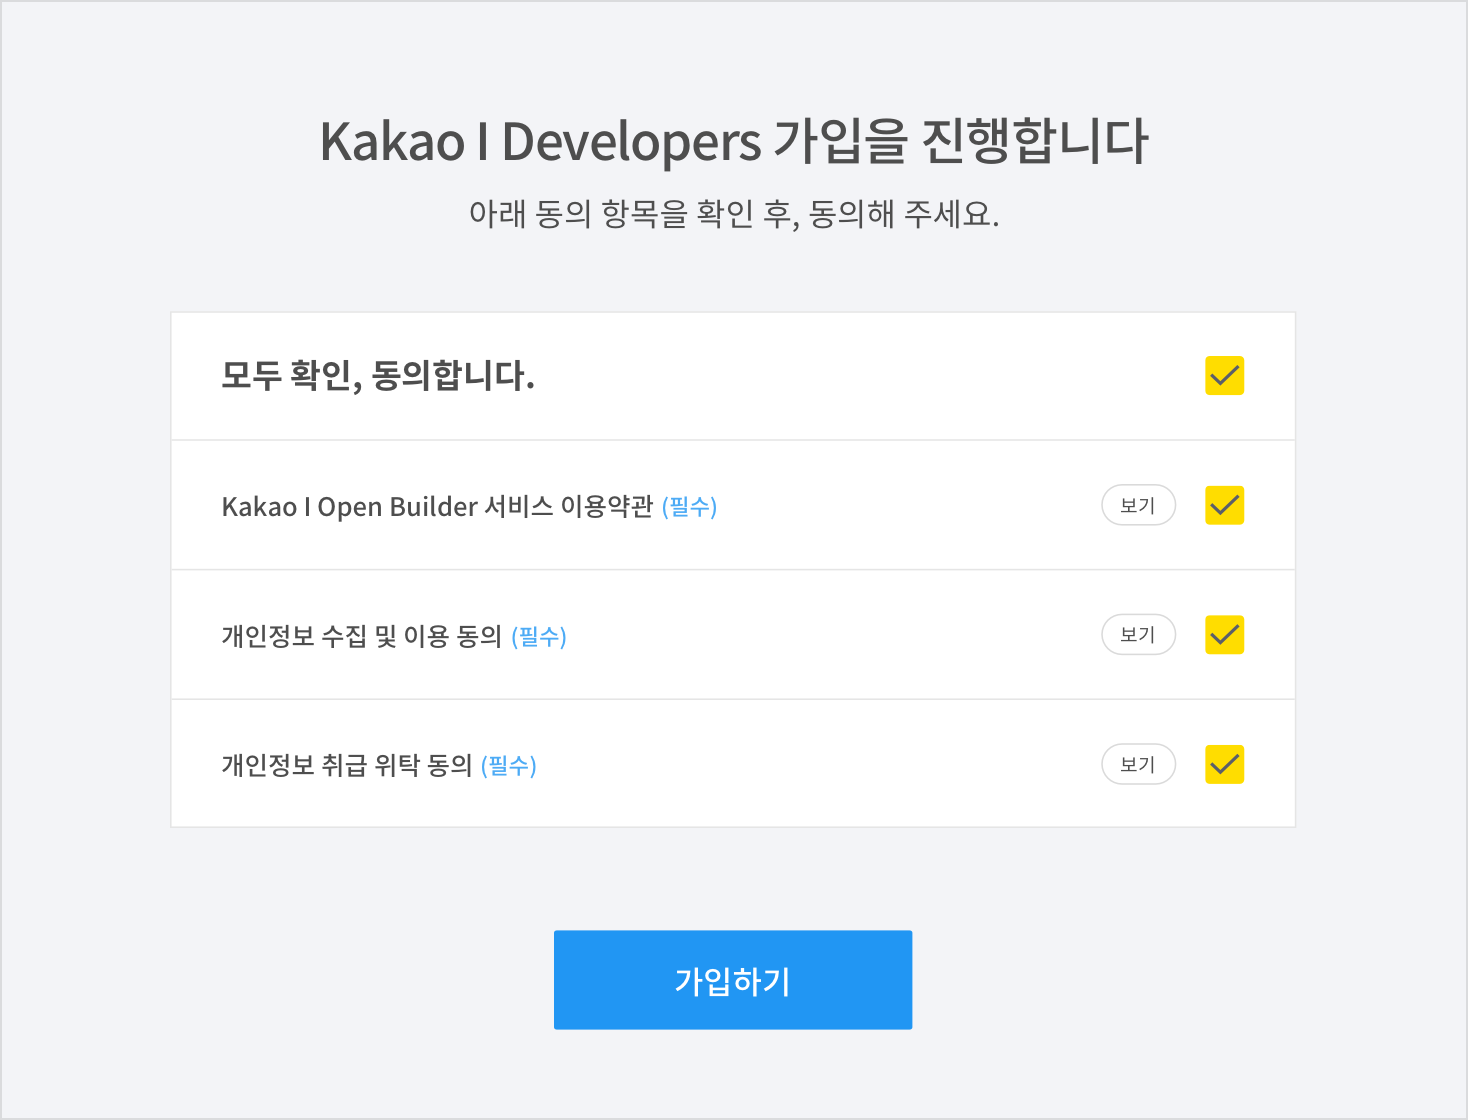 reg-kakaoi-developers.png